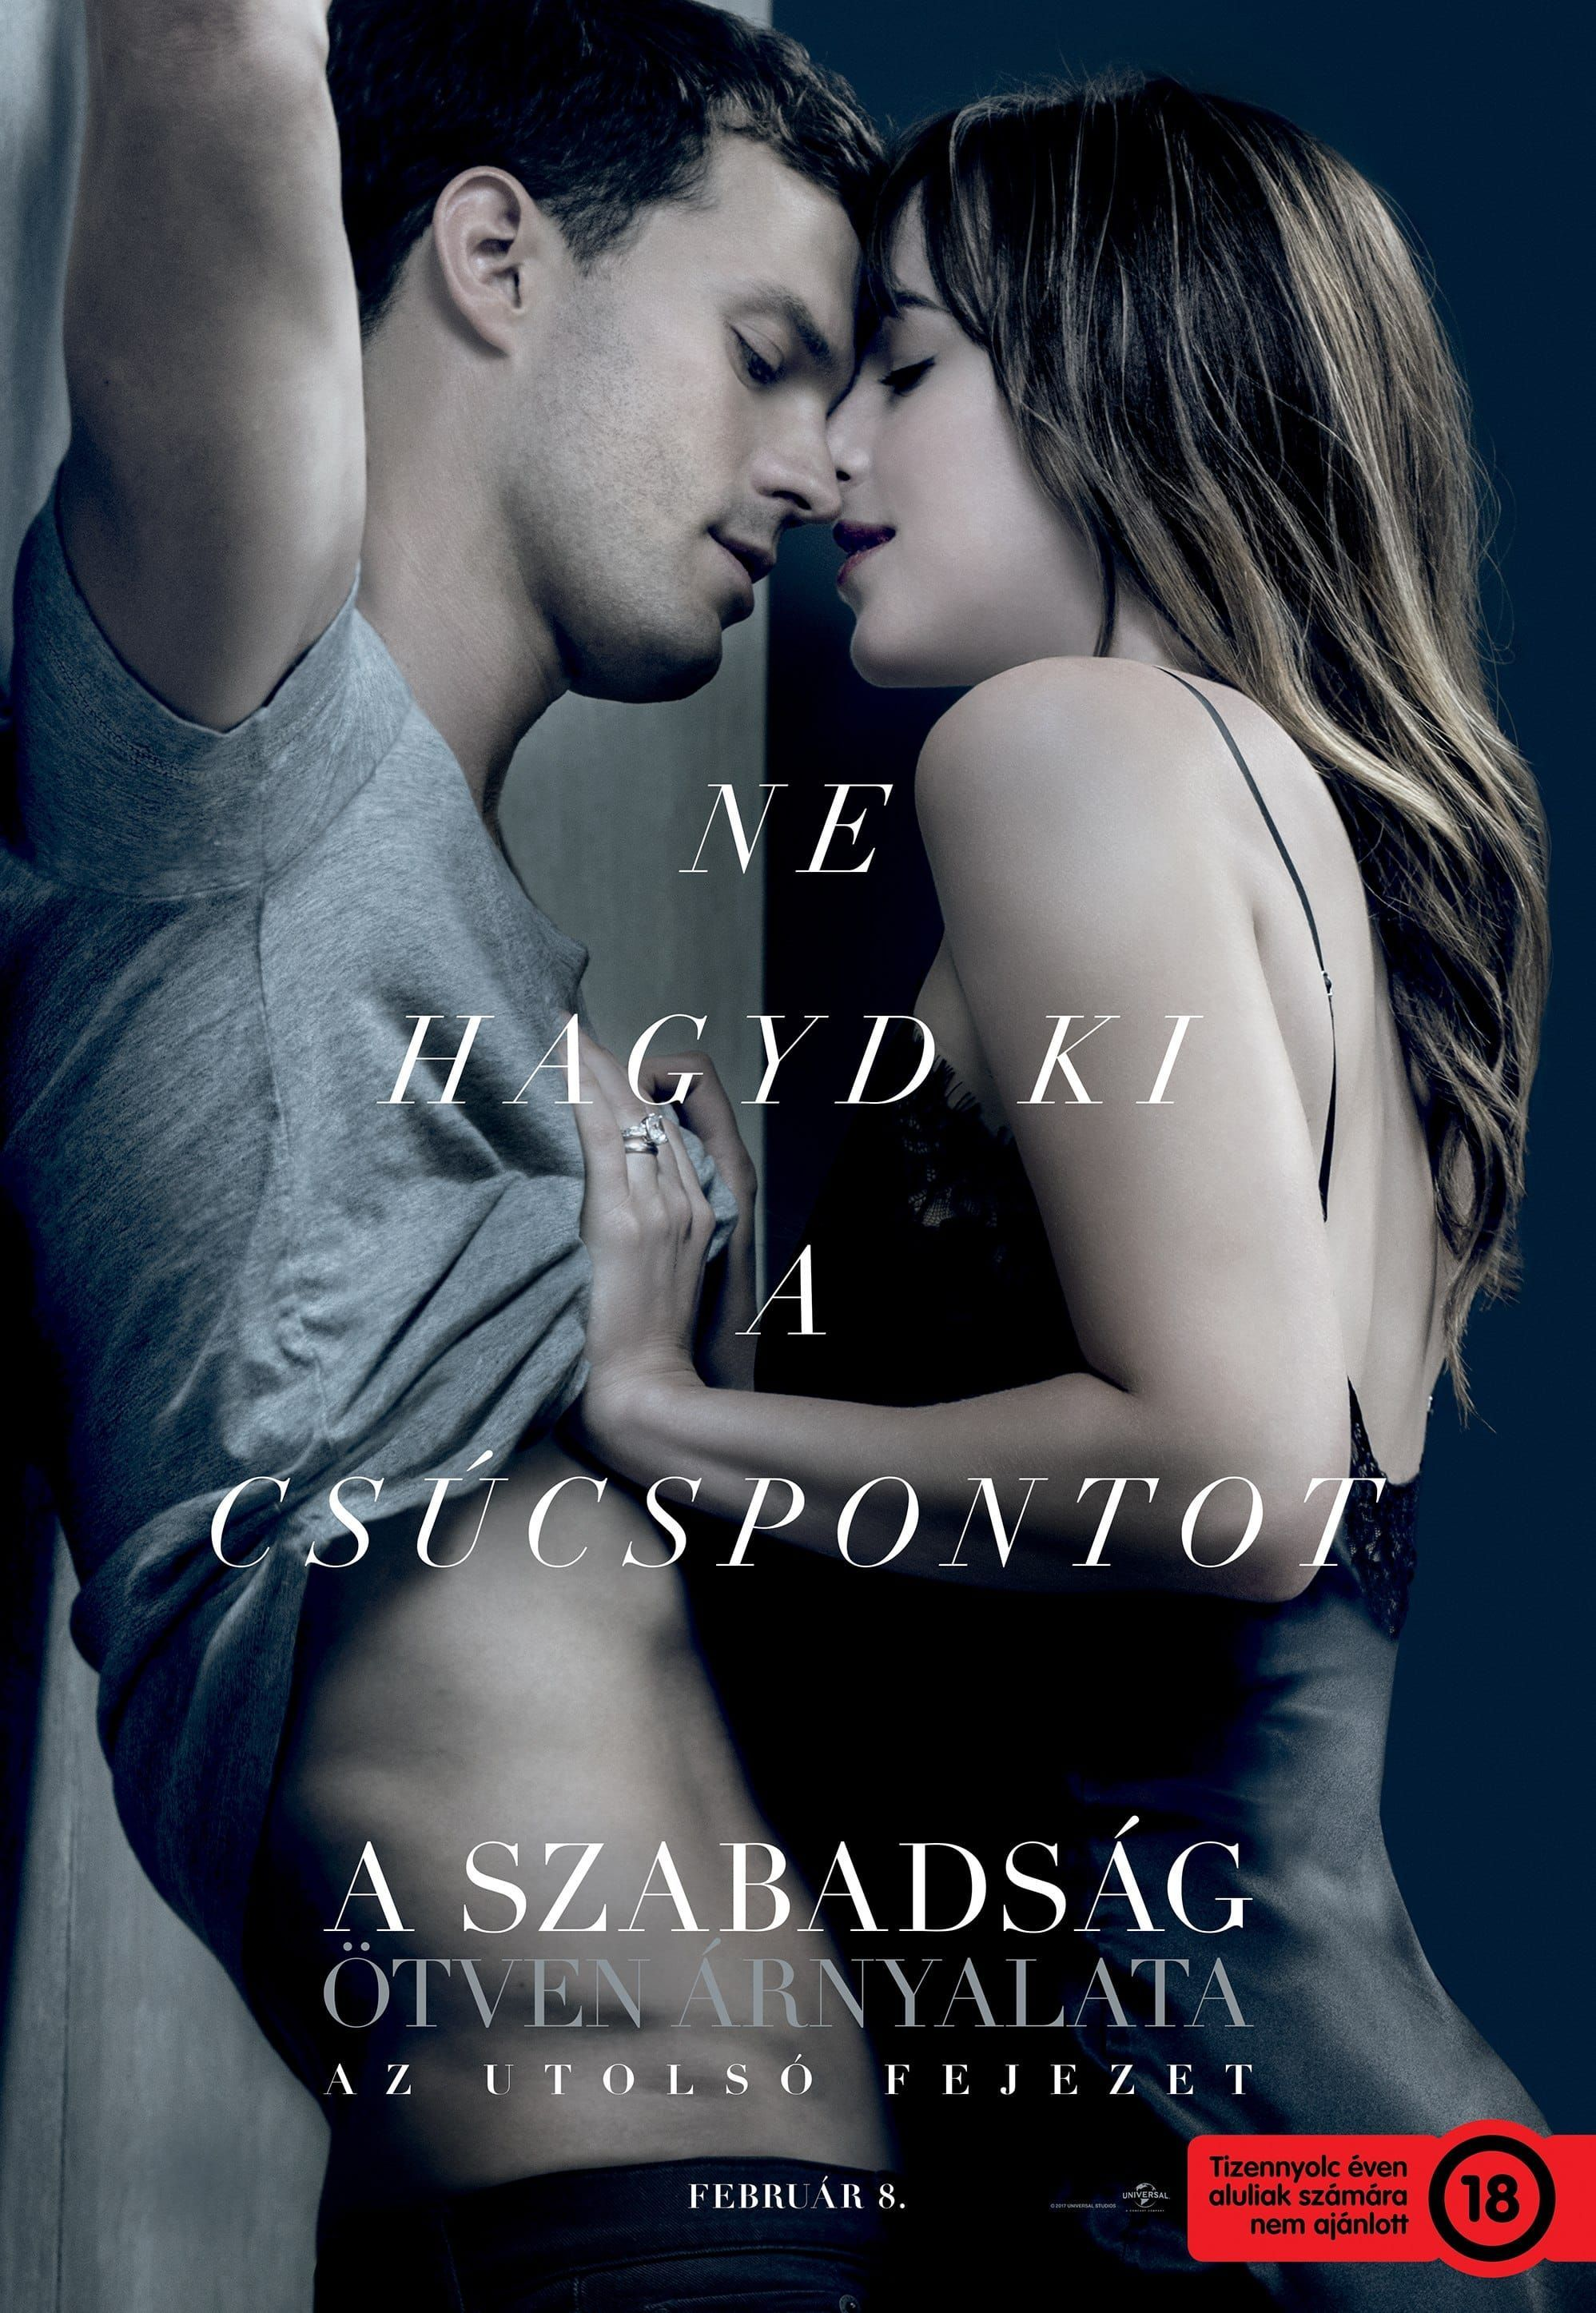 A Szabadsag Otven Arnyalata Fifty Shades Freed 2018 Mafab Hu